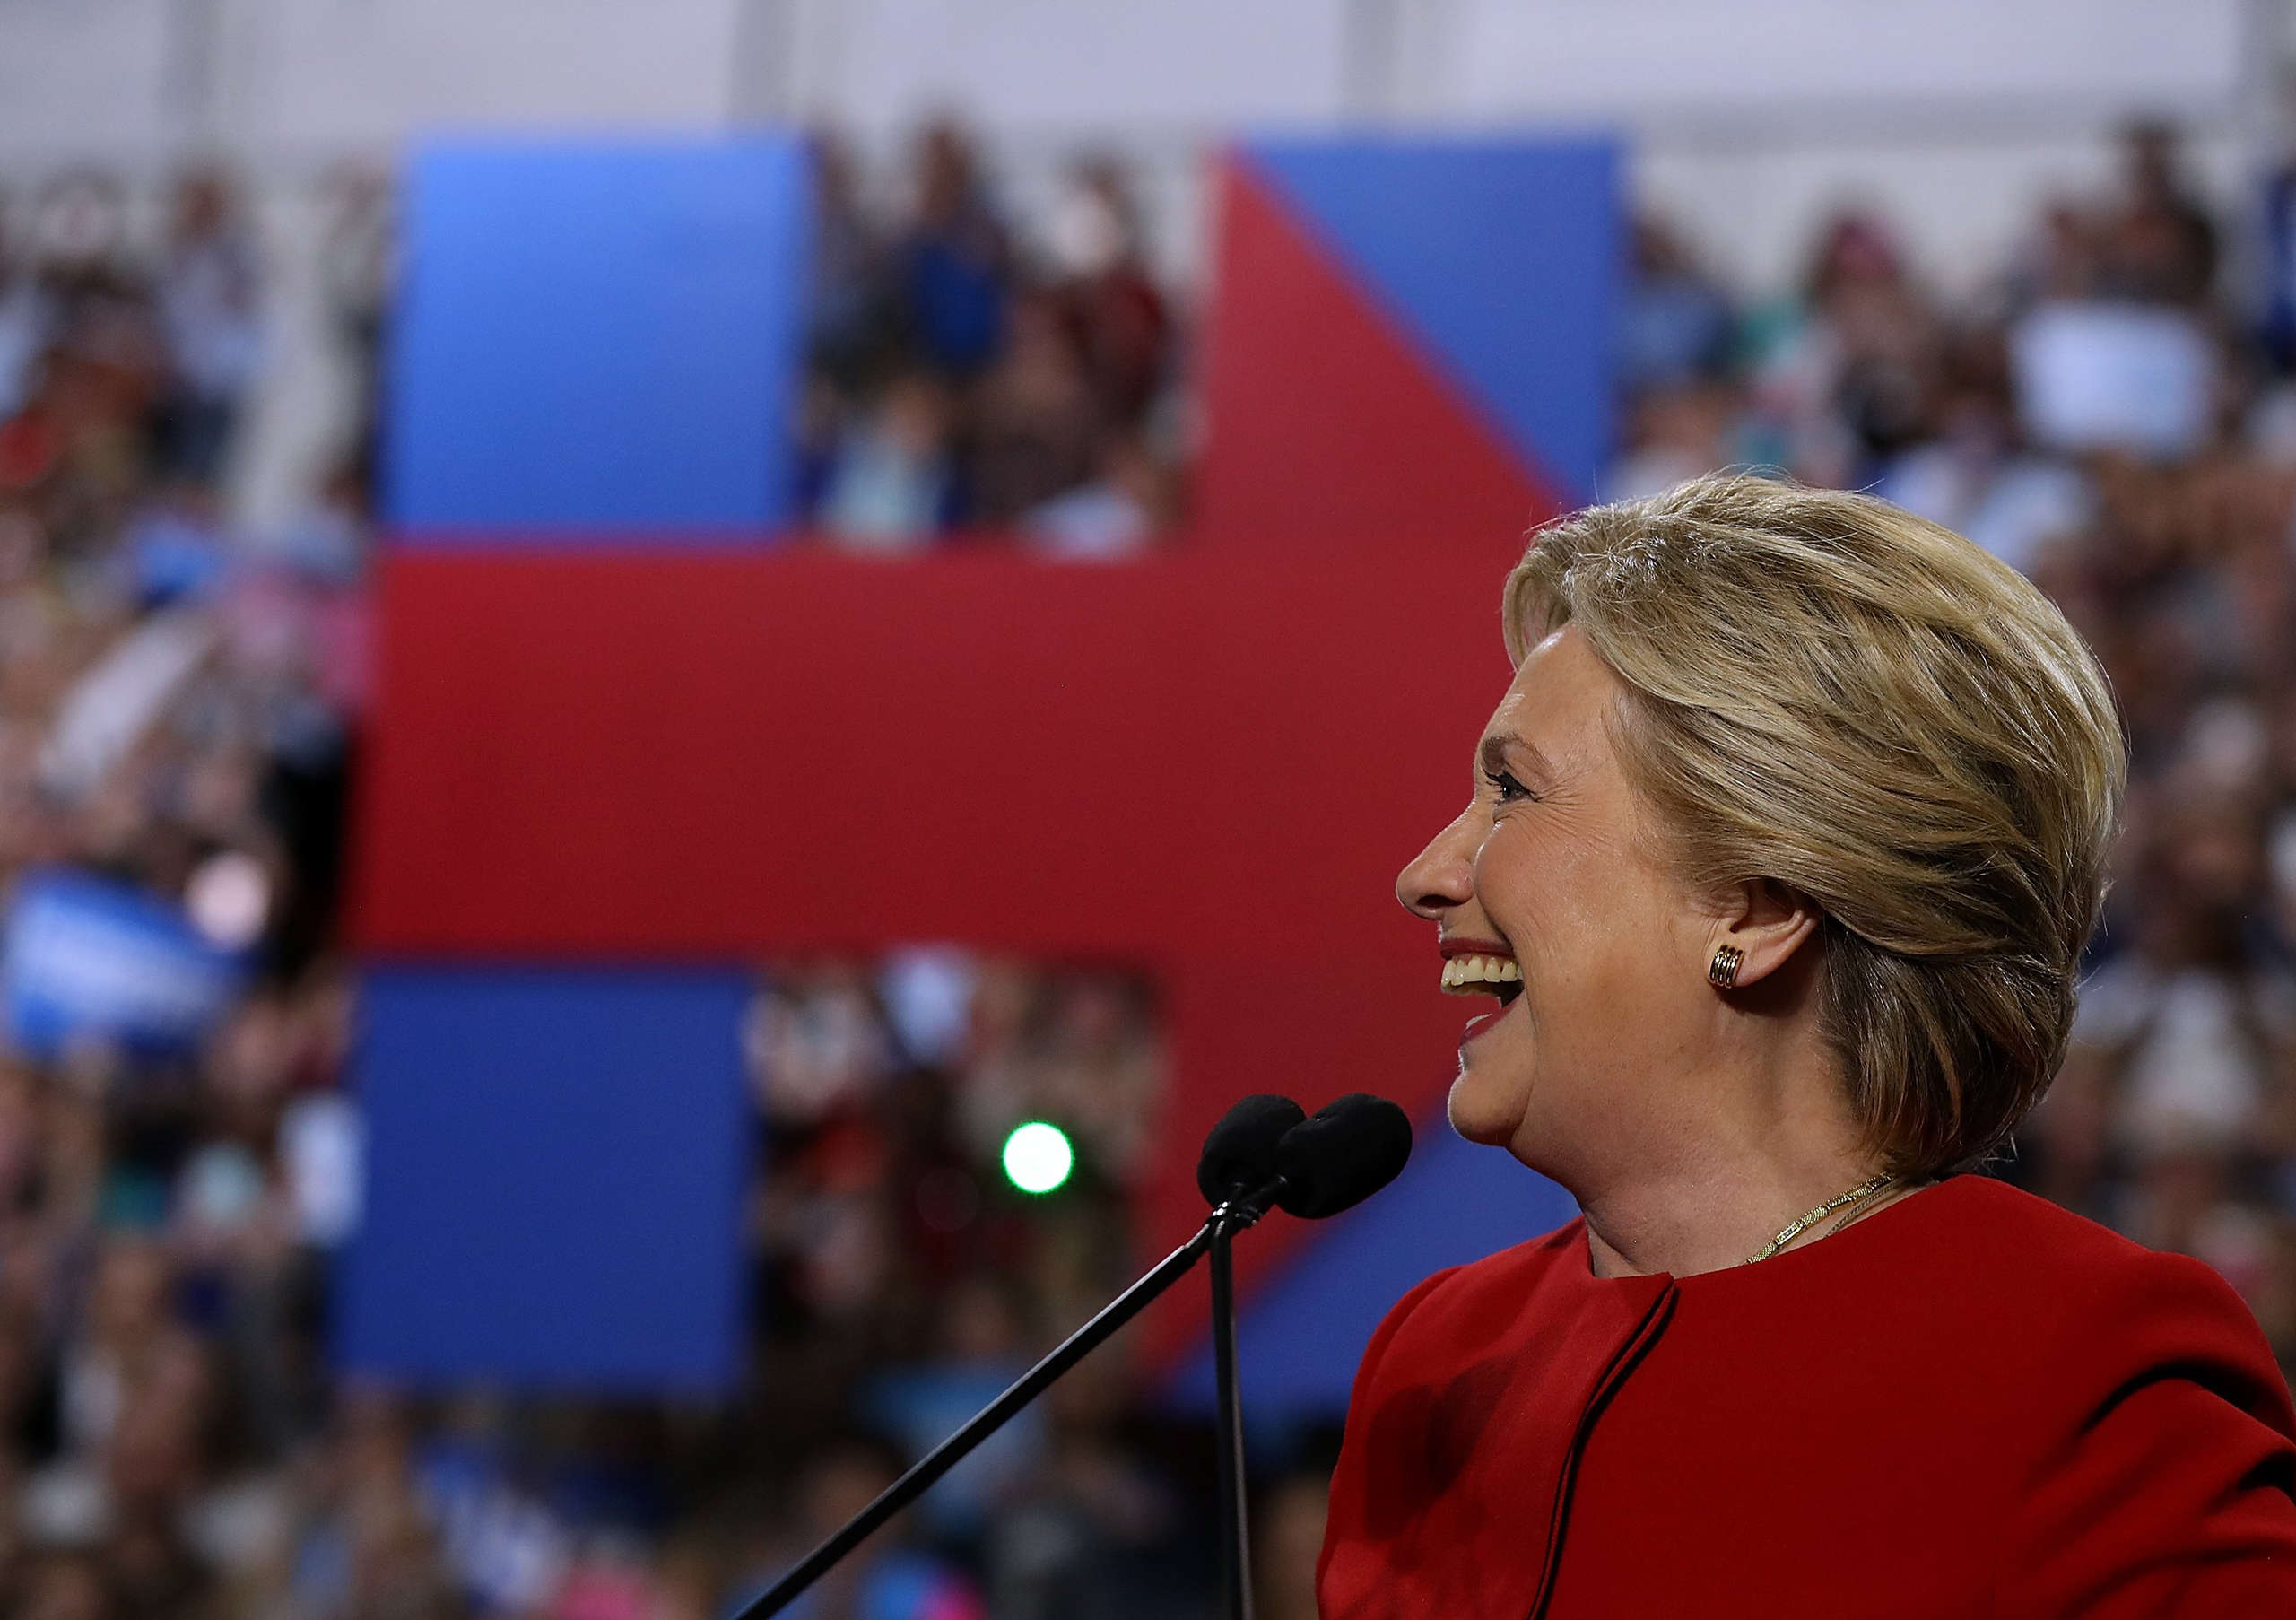 Democratic presidential nominee  Hillary Clinton speaks during a campaign rally at Grand Valley State University in Allendale, Mi., on Nov. 7, 2016.